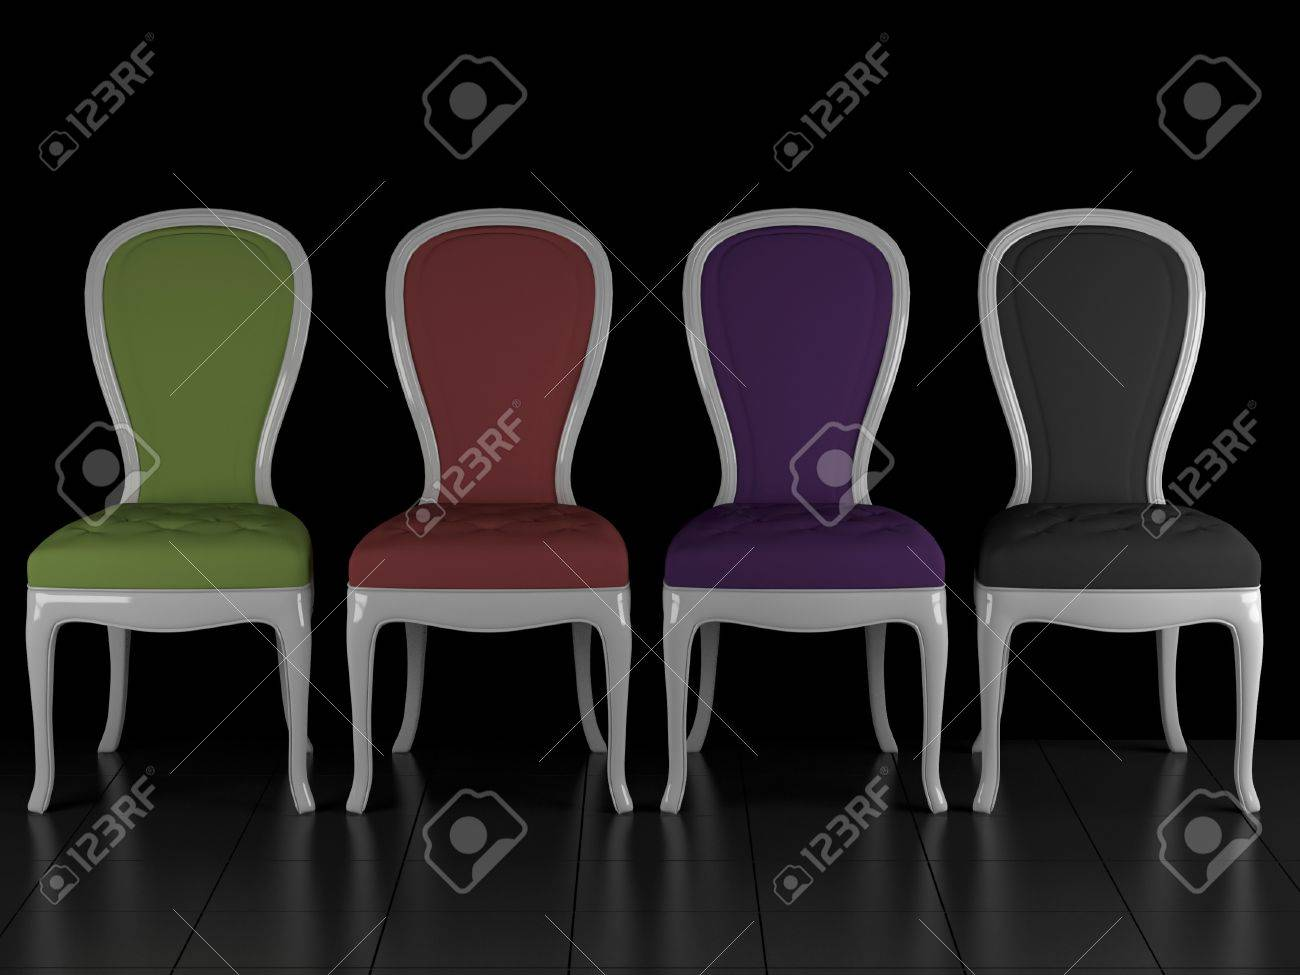 four classic chairs in the dark room, 3d render/illustration stock